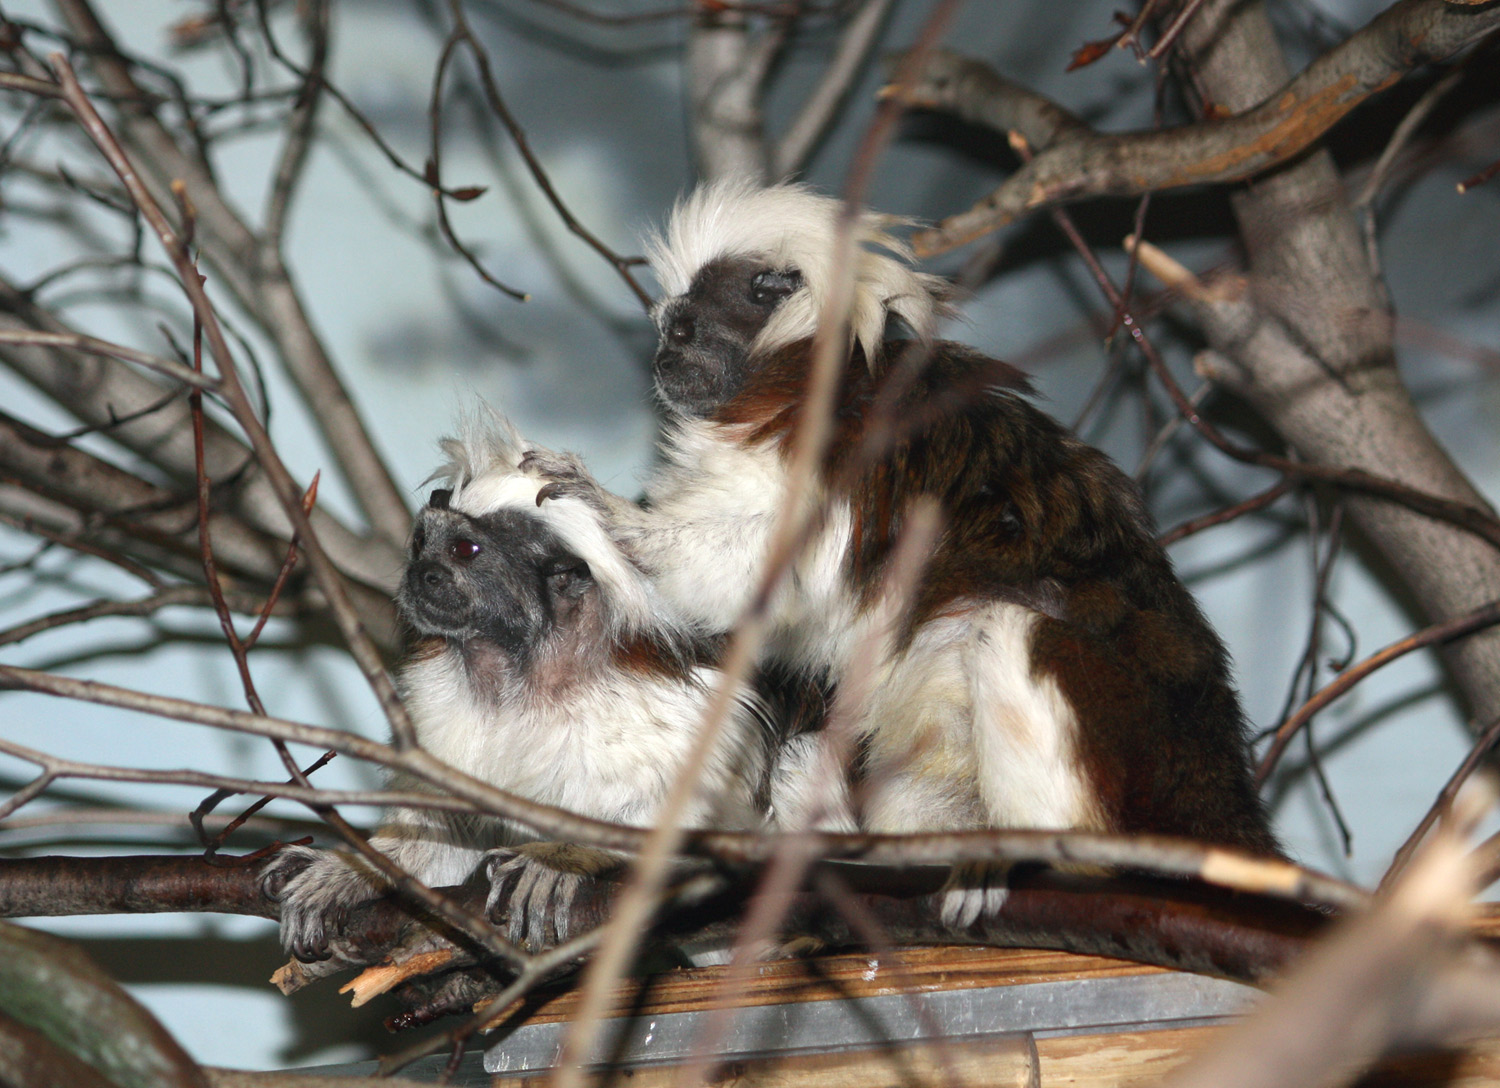 Two furry brown and white primates sit side-by-side on branch, one has hand on other's head